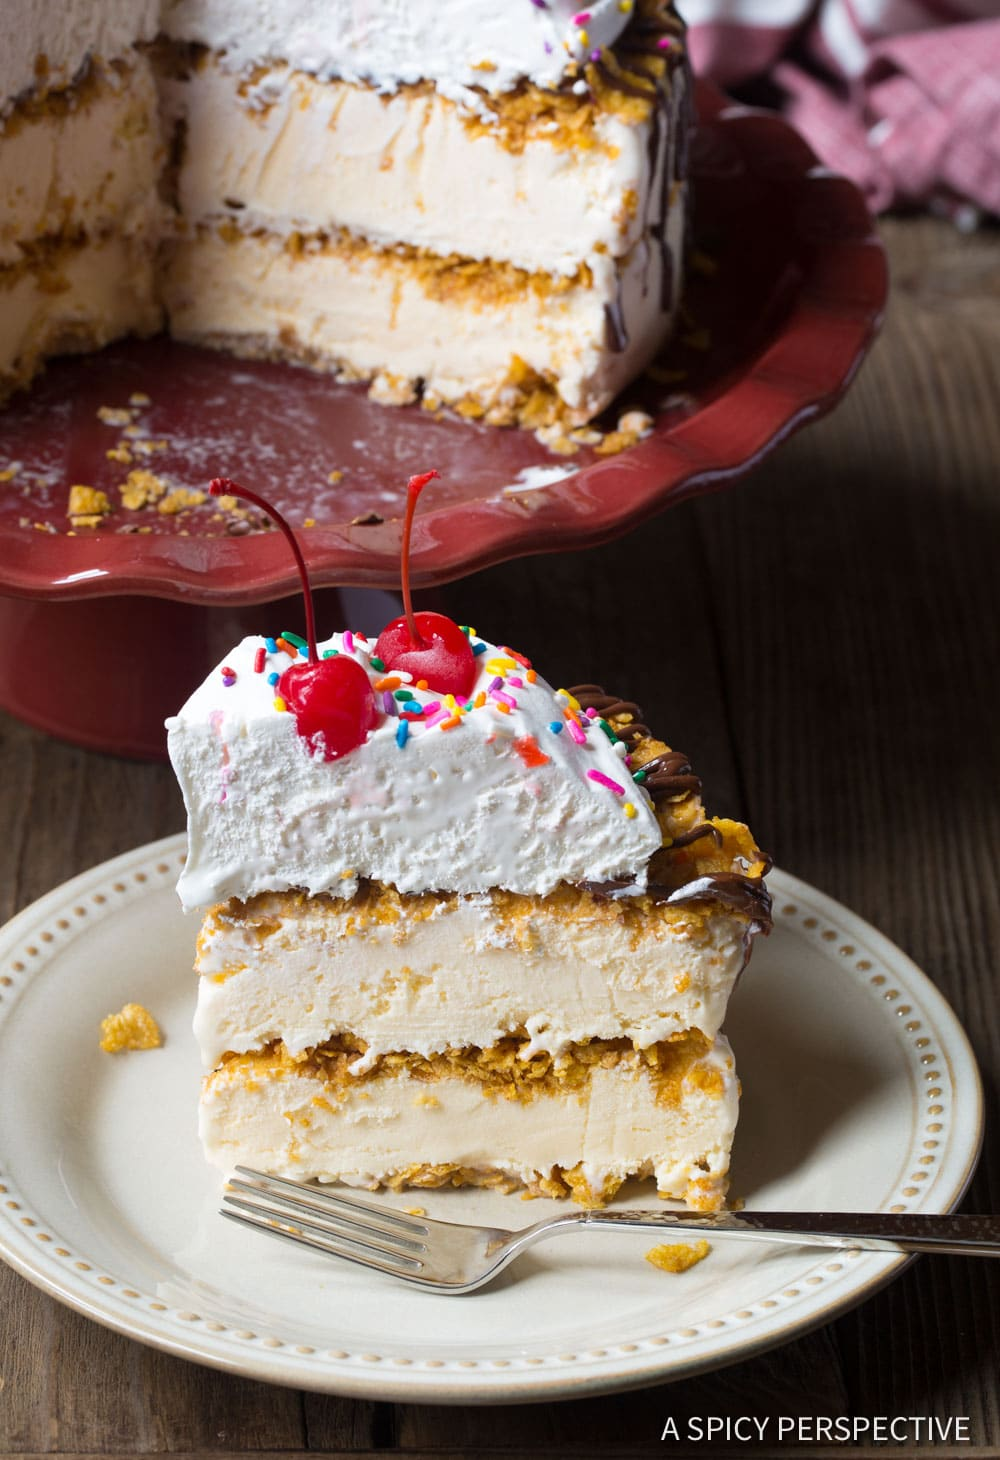 Wow! Mexican Fried Ice Cream Cake Recipe #ASpicyPerspective